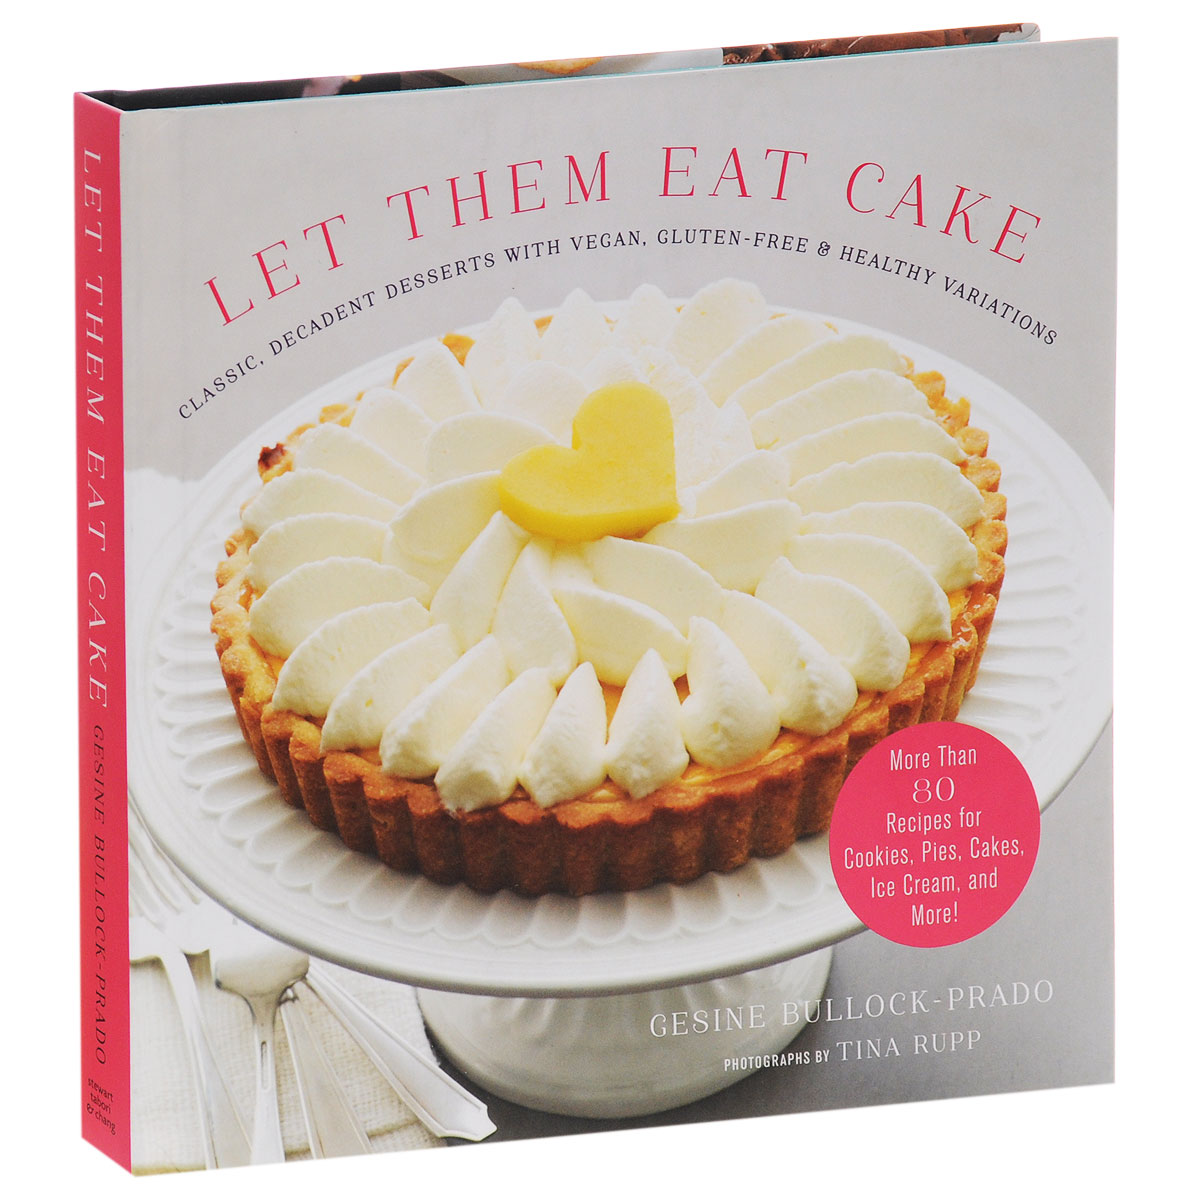 Let Them Eat Cake: Classic, Decadent Desserts with Vegan, Gluten-Free & Healthy Variations the gluten free bible the thoroughly indispensable guide to negotiating life without wheat